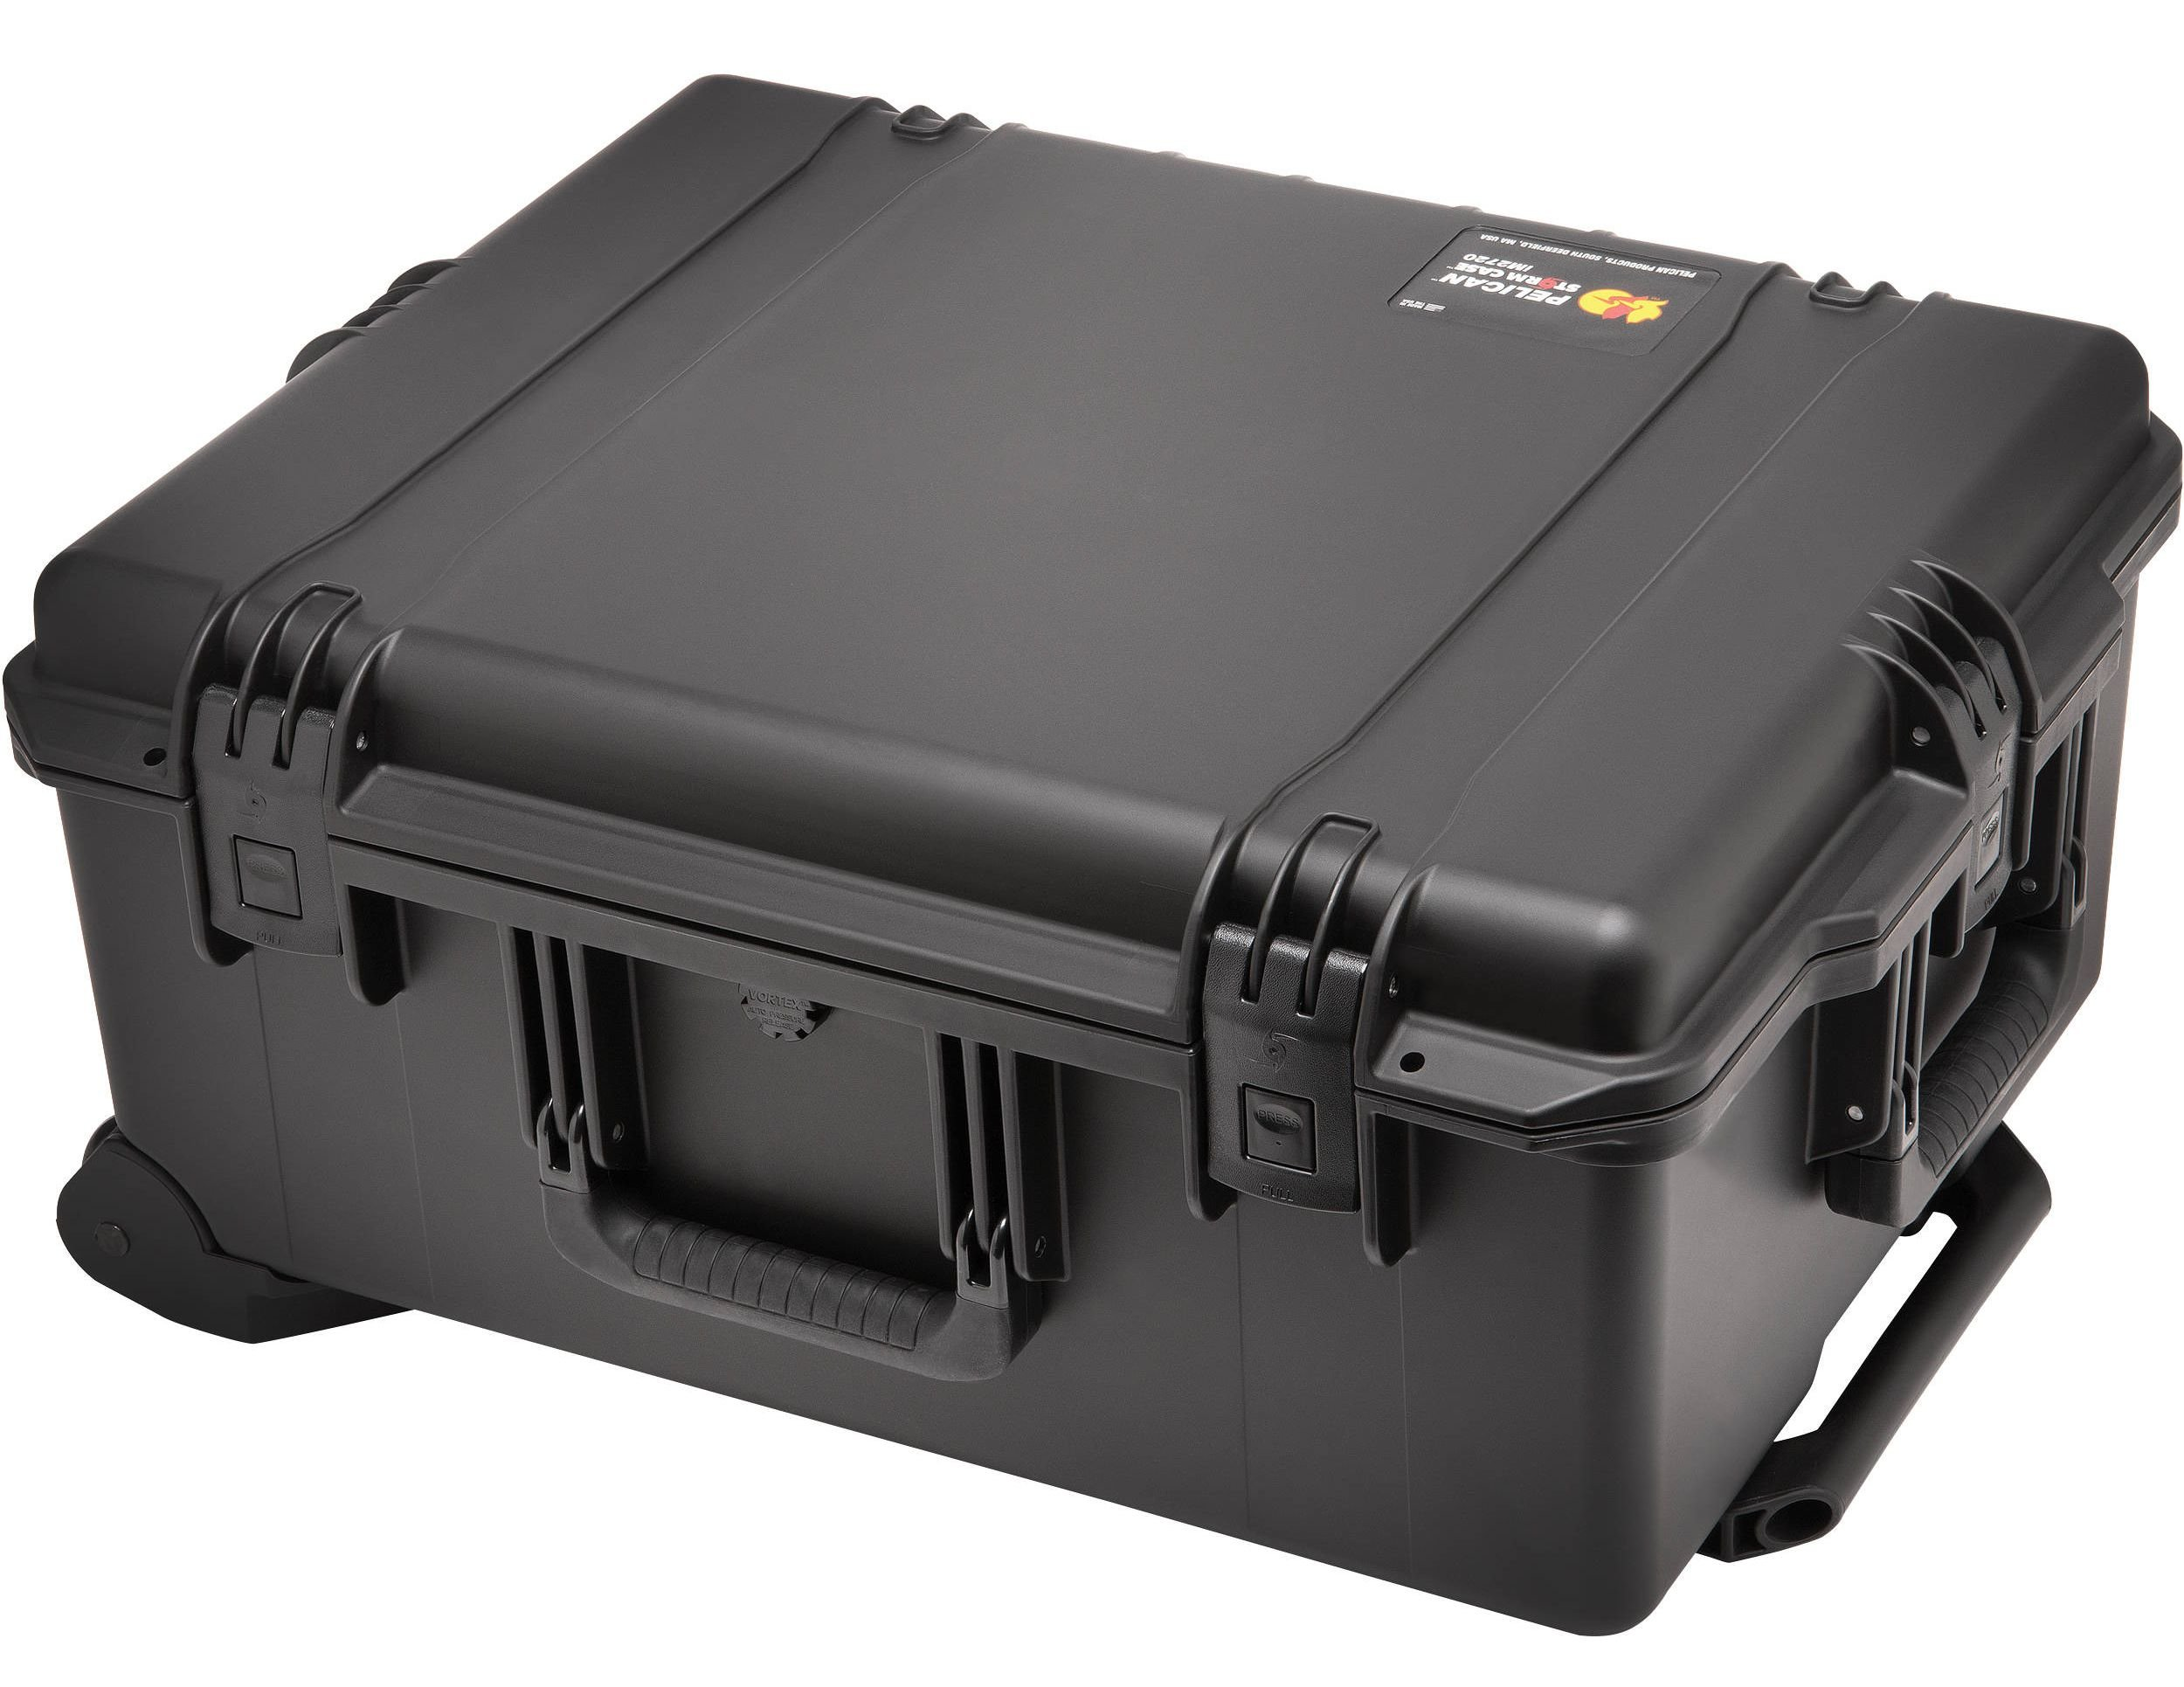 G-Technology G-SPEED Shuttle XL Protective Case - Pelican Storm iM2720 with Spare Drive Module Foam by G-Technology